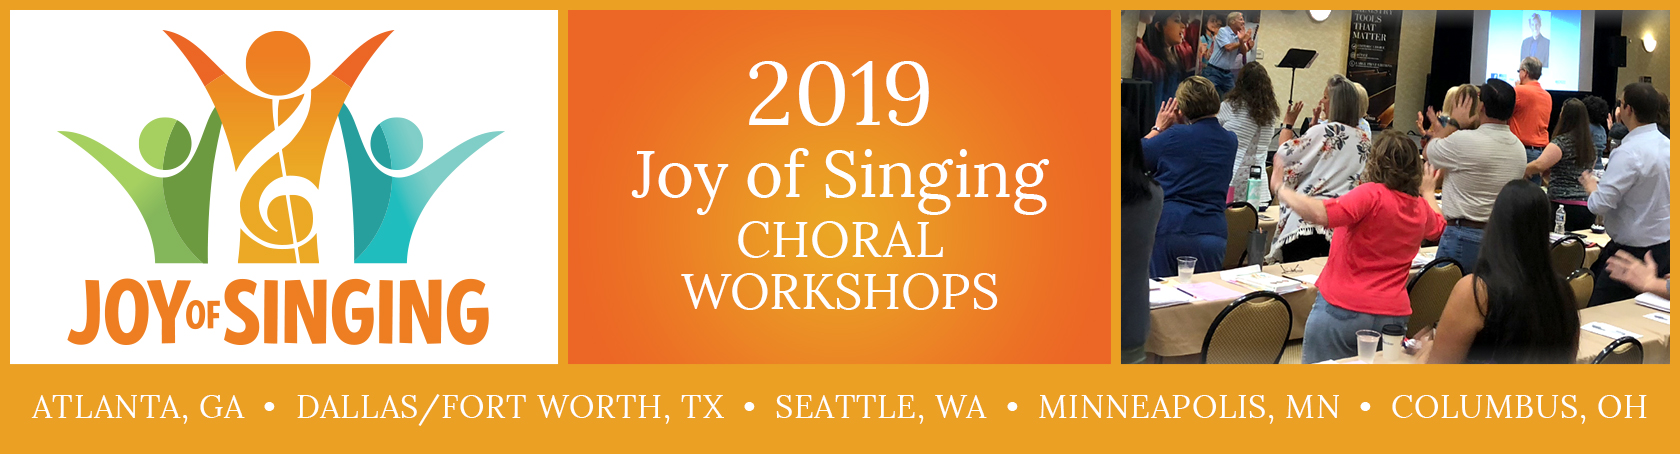 Joy of Singing